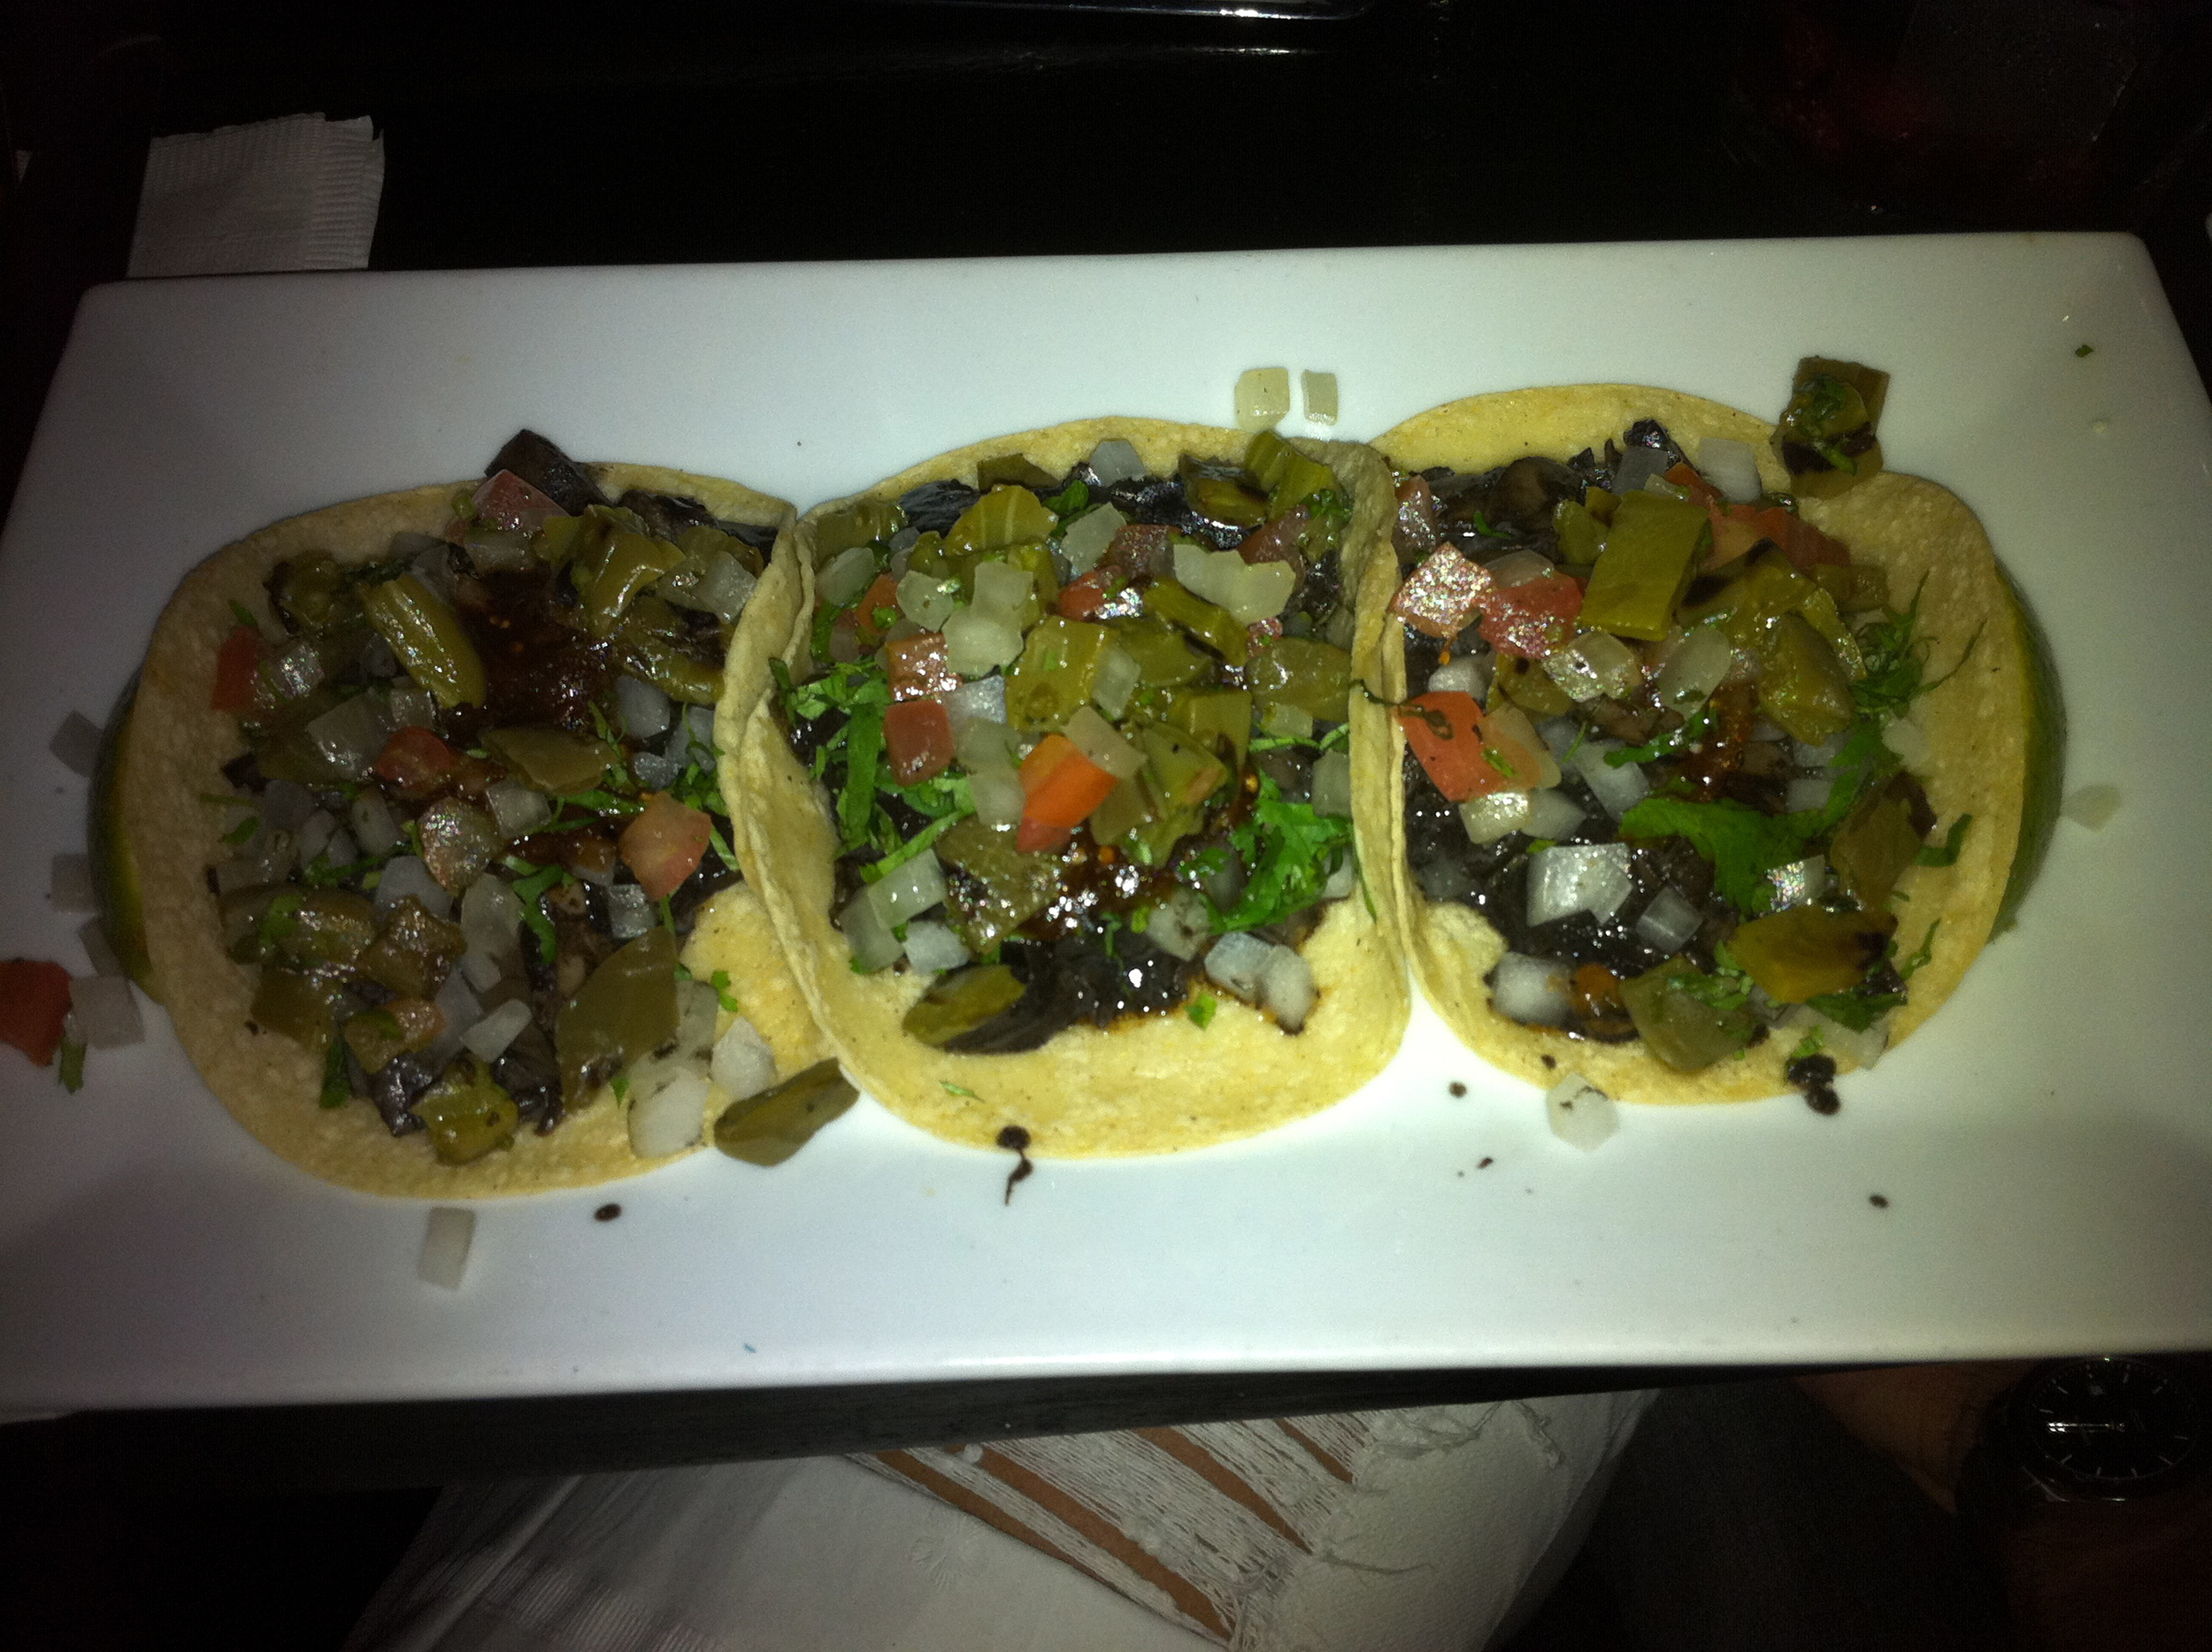 Mushroom tacos are maybe our favorite choice at mexican restaurants and they're totally vegan!